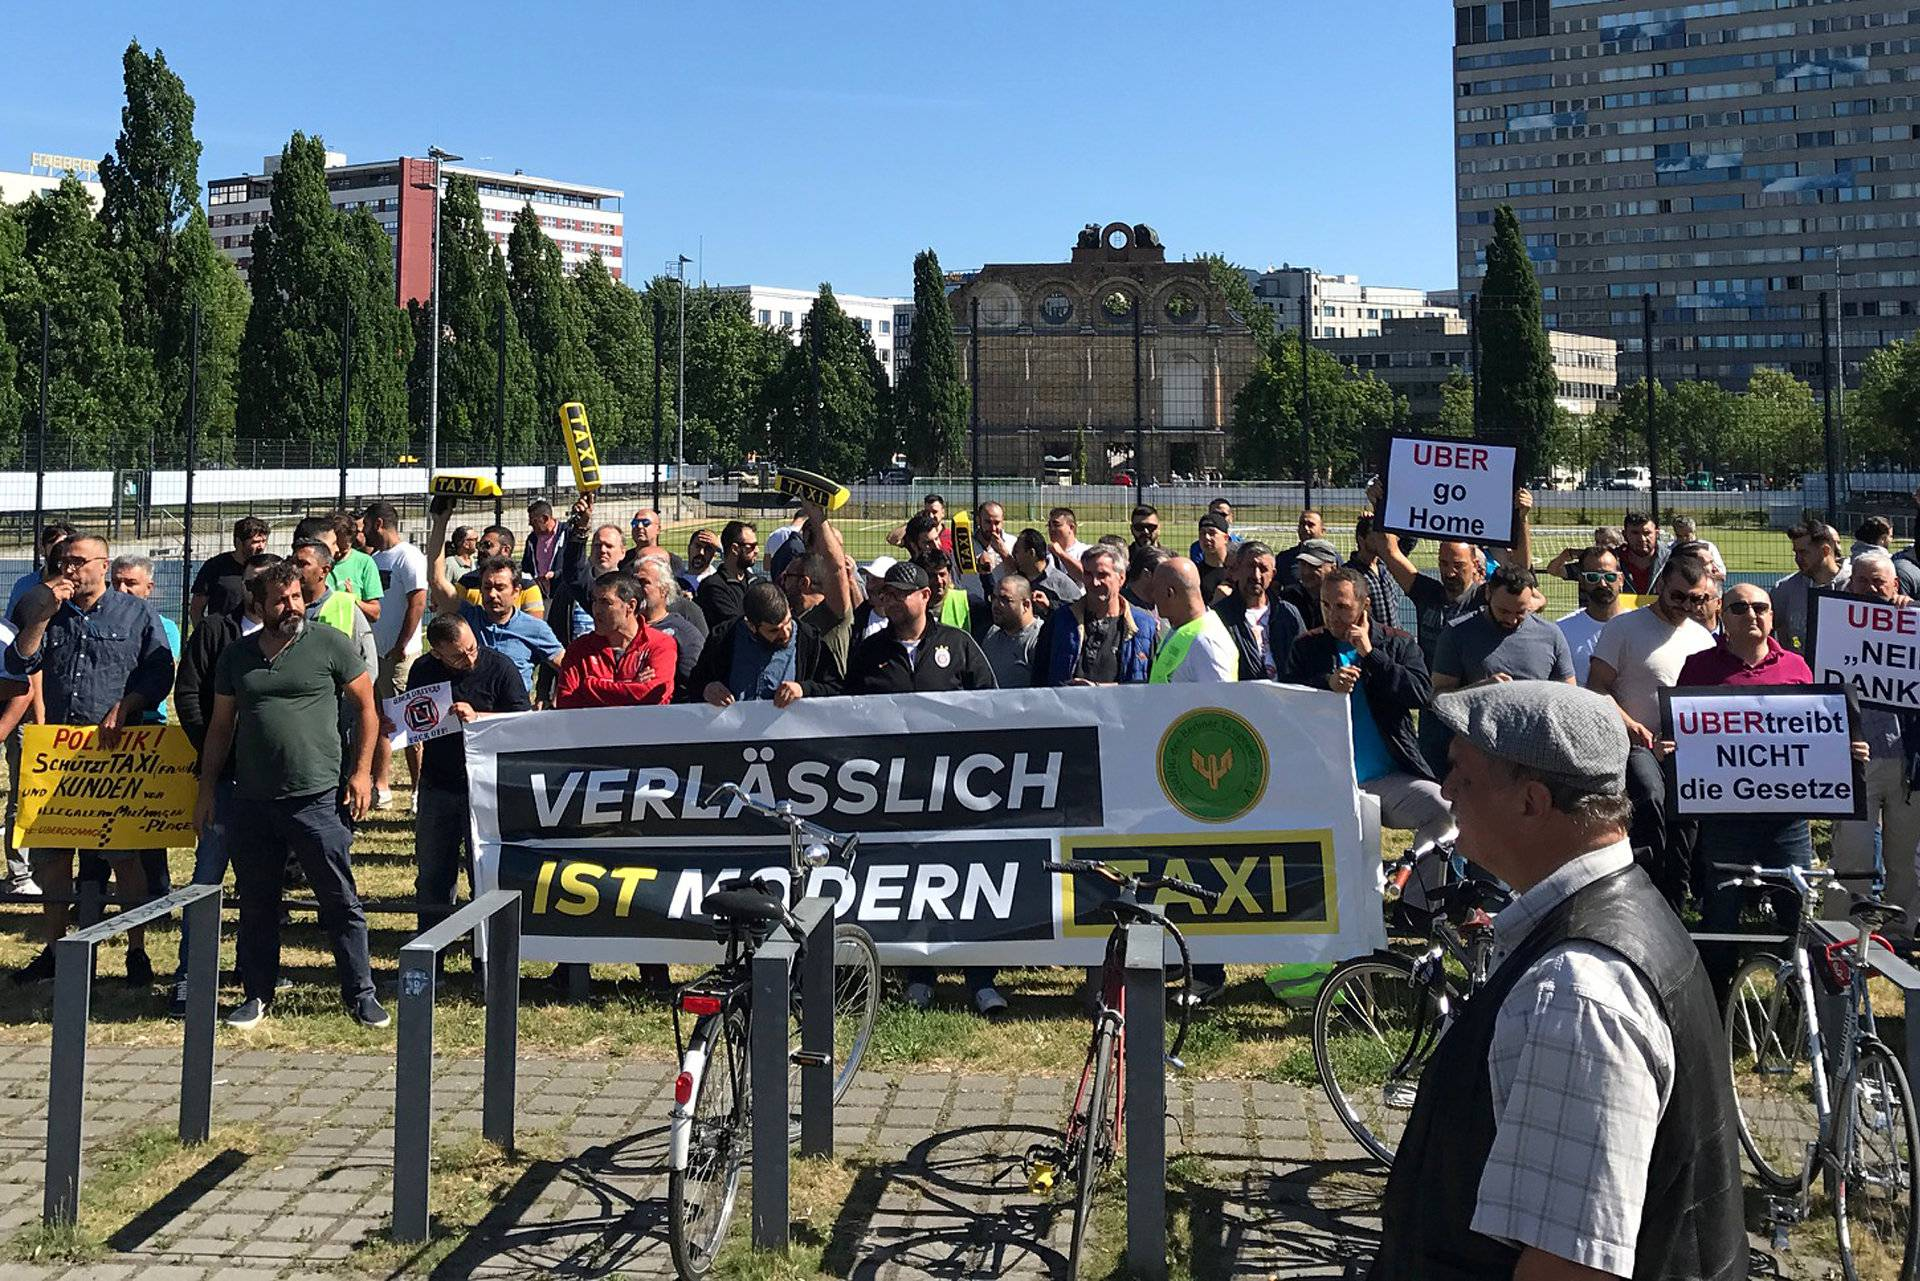 German taxi driver protest against Uber